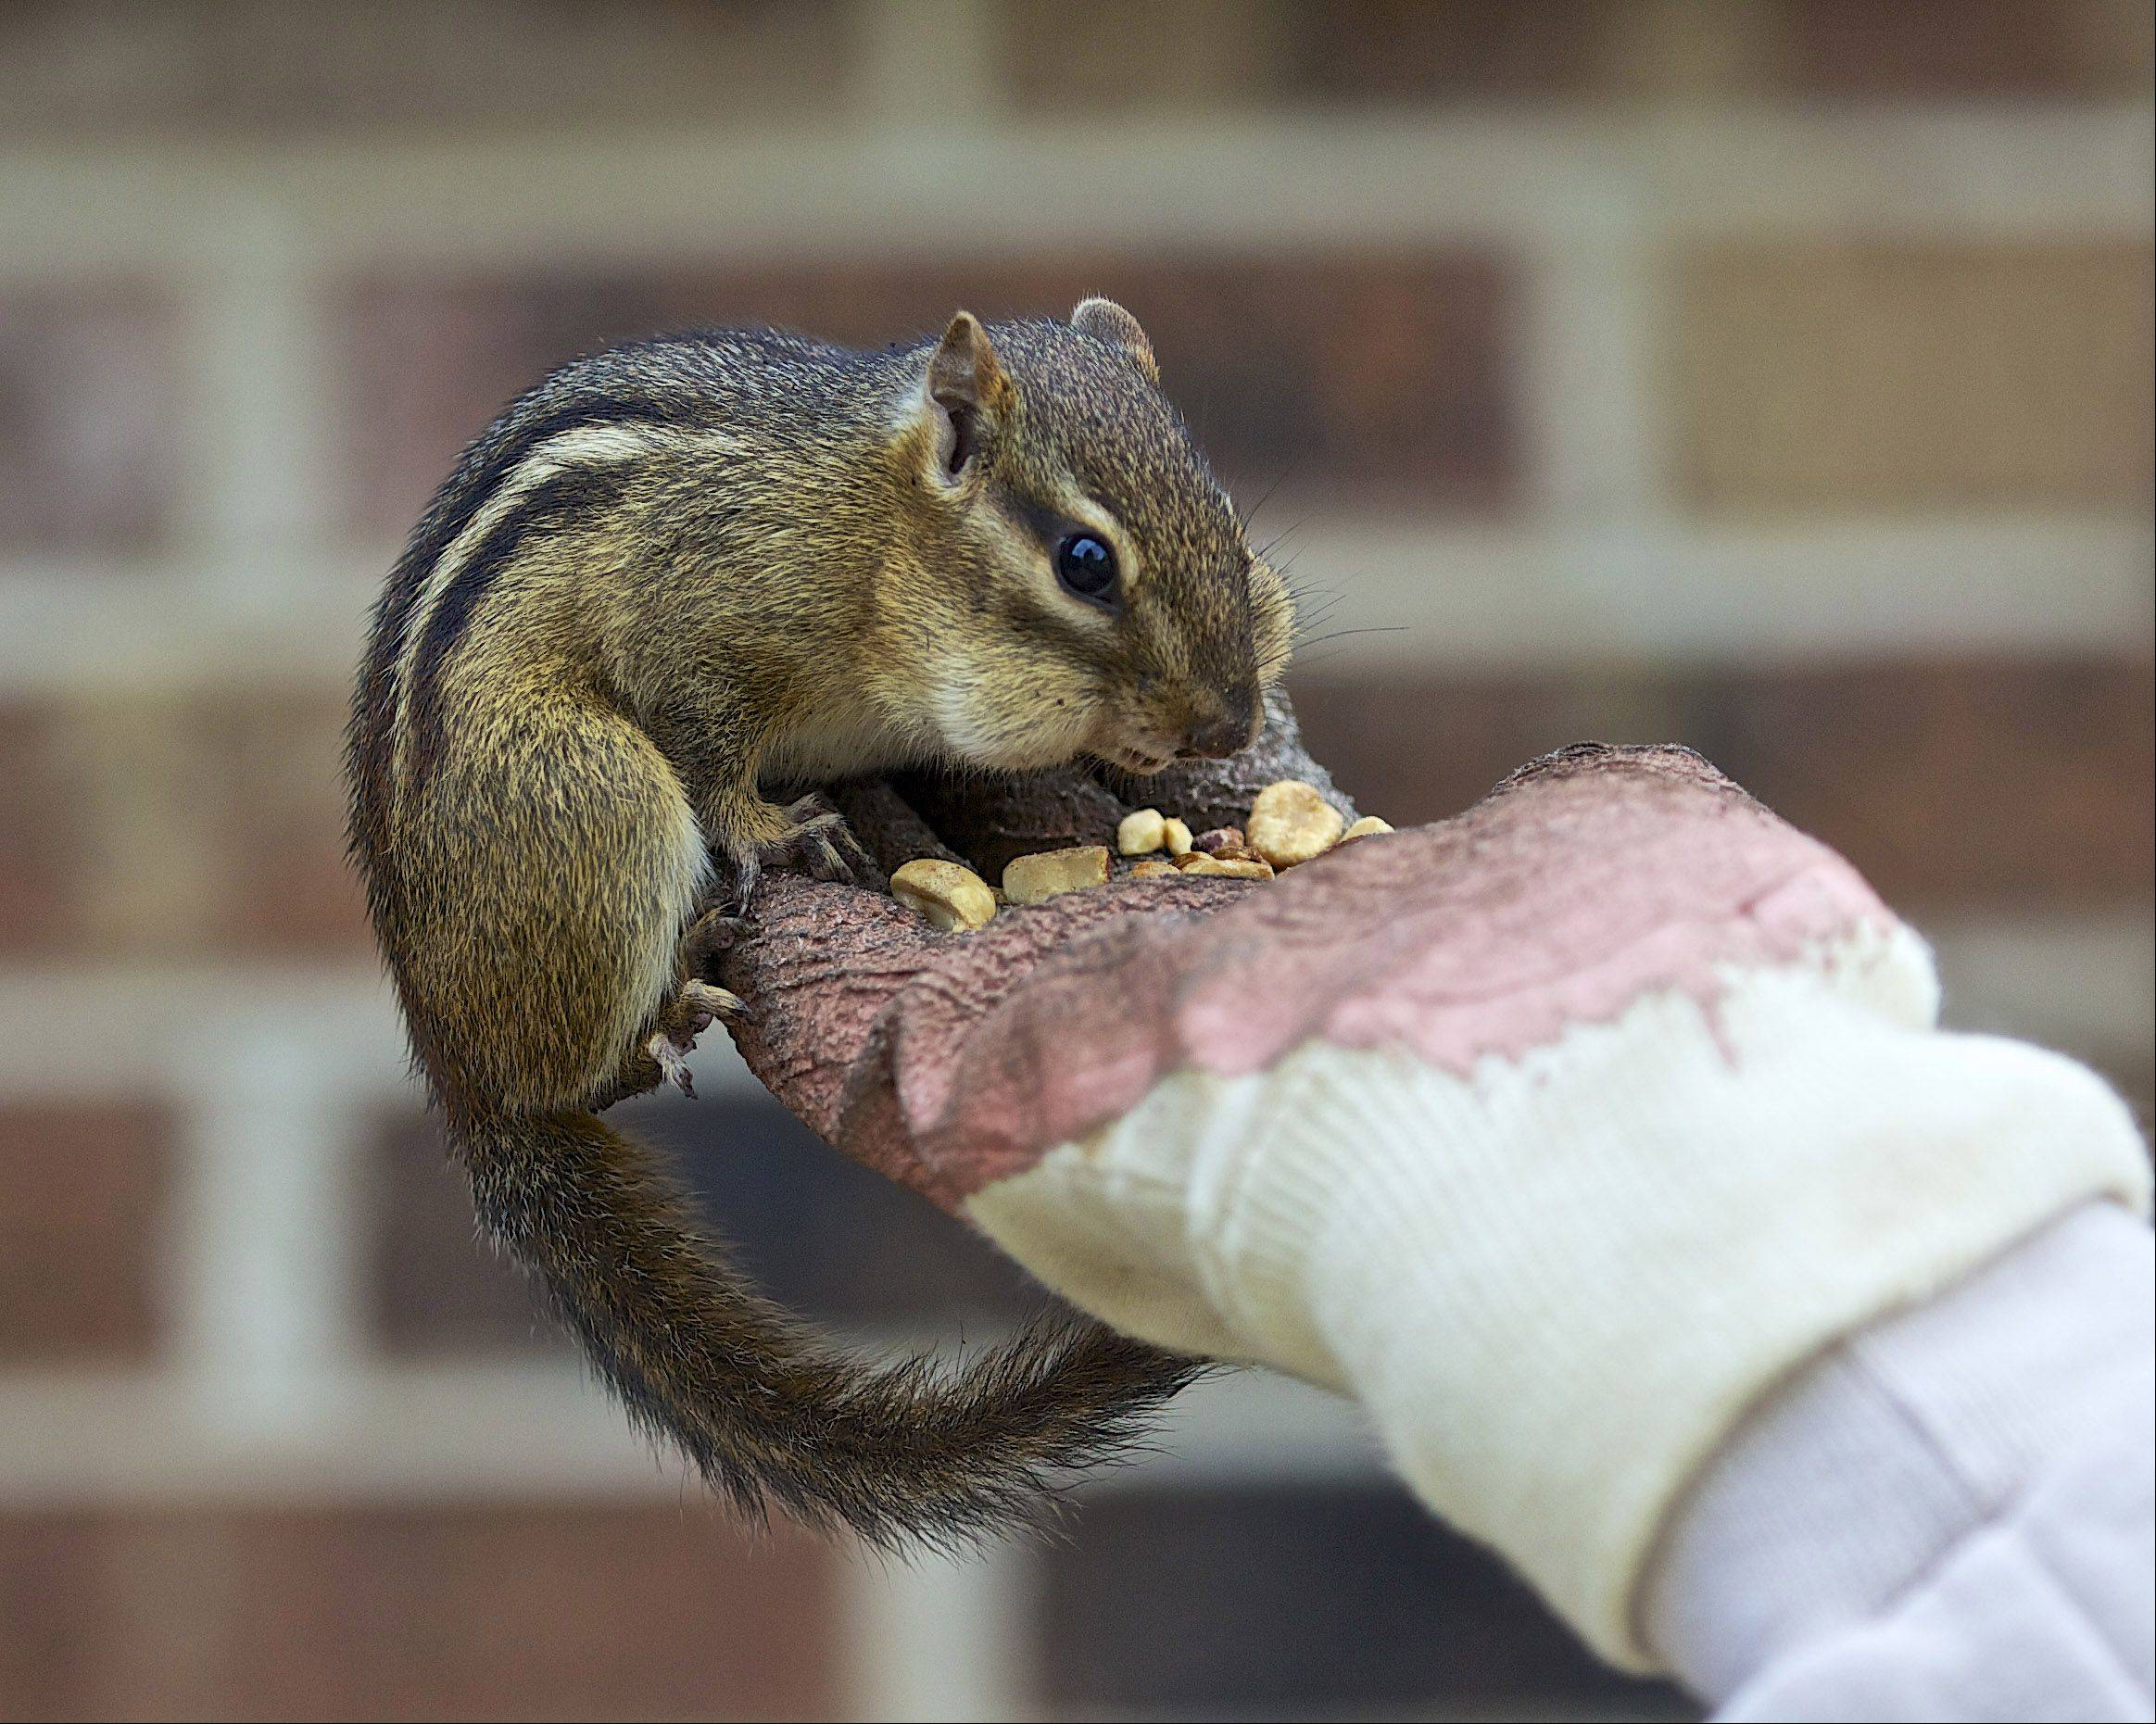 A chipmunk eats peanuts out of a woman's hand on May 4th in an Ingleside.